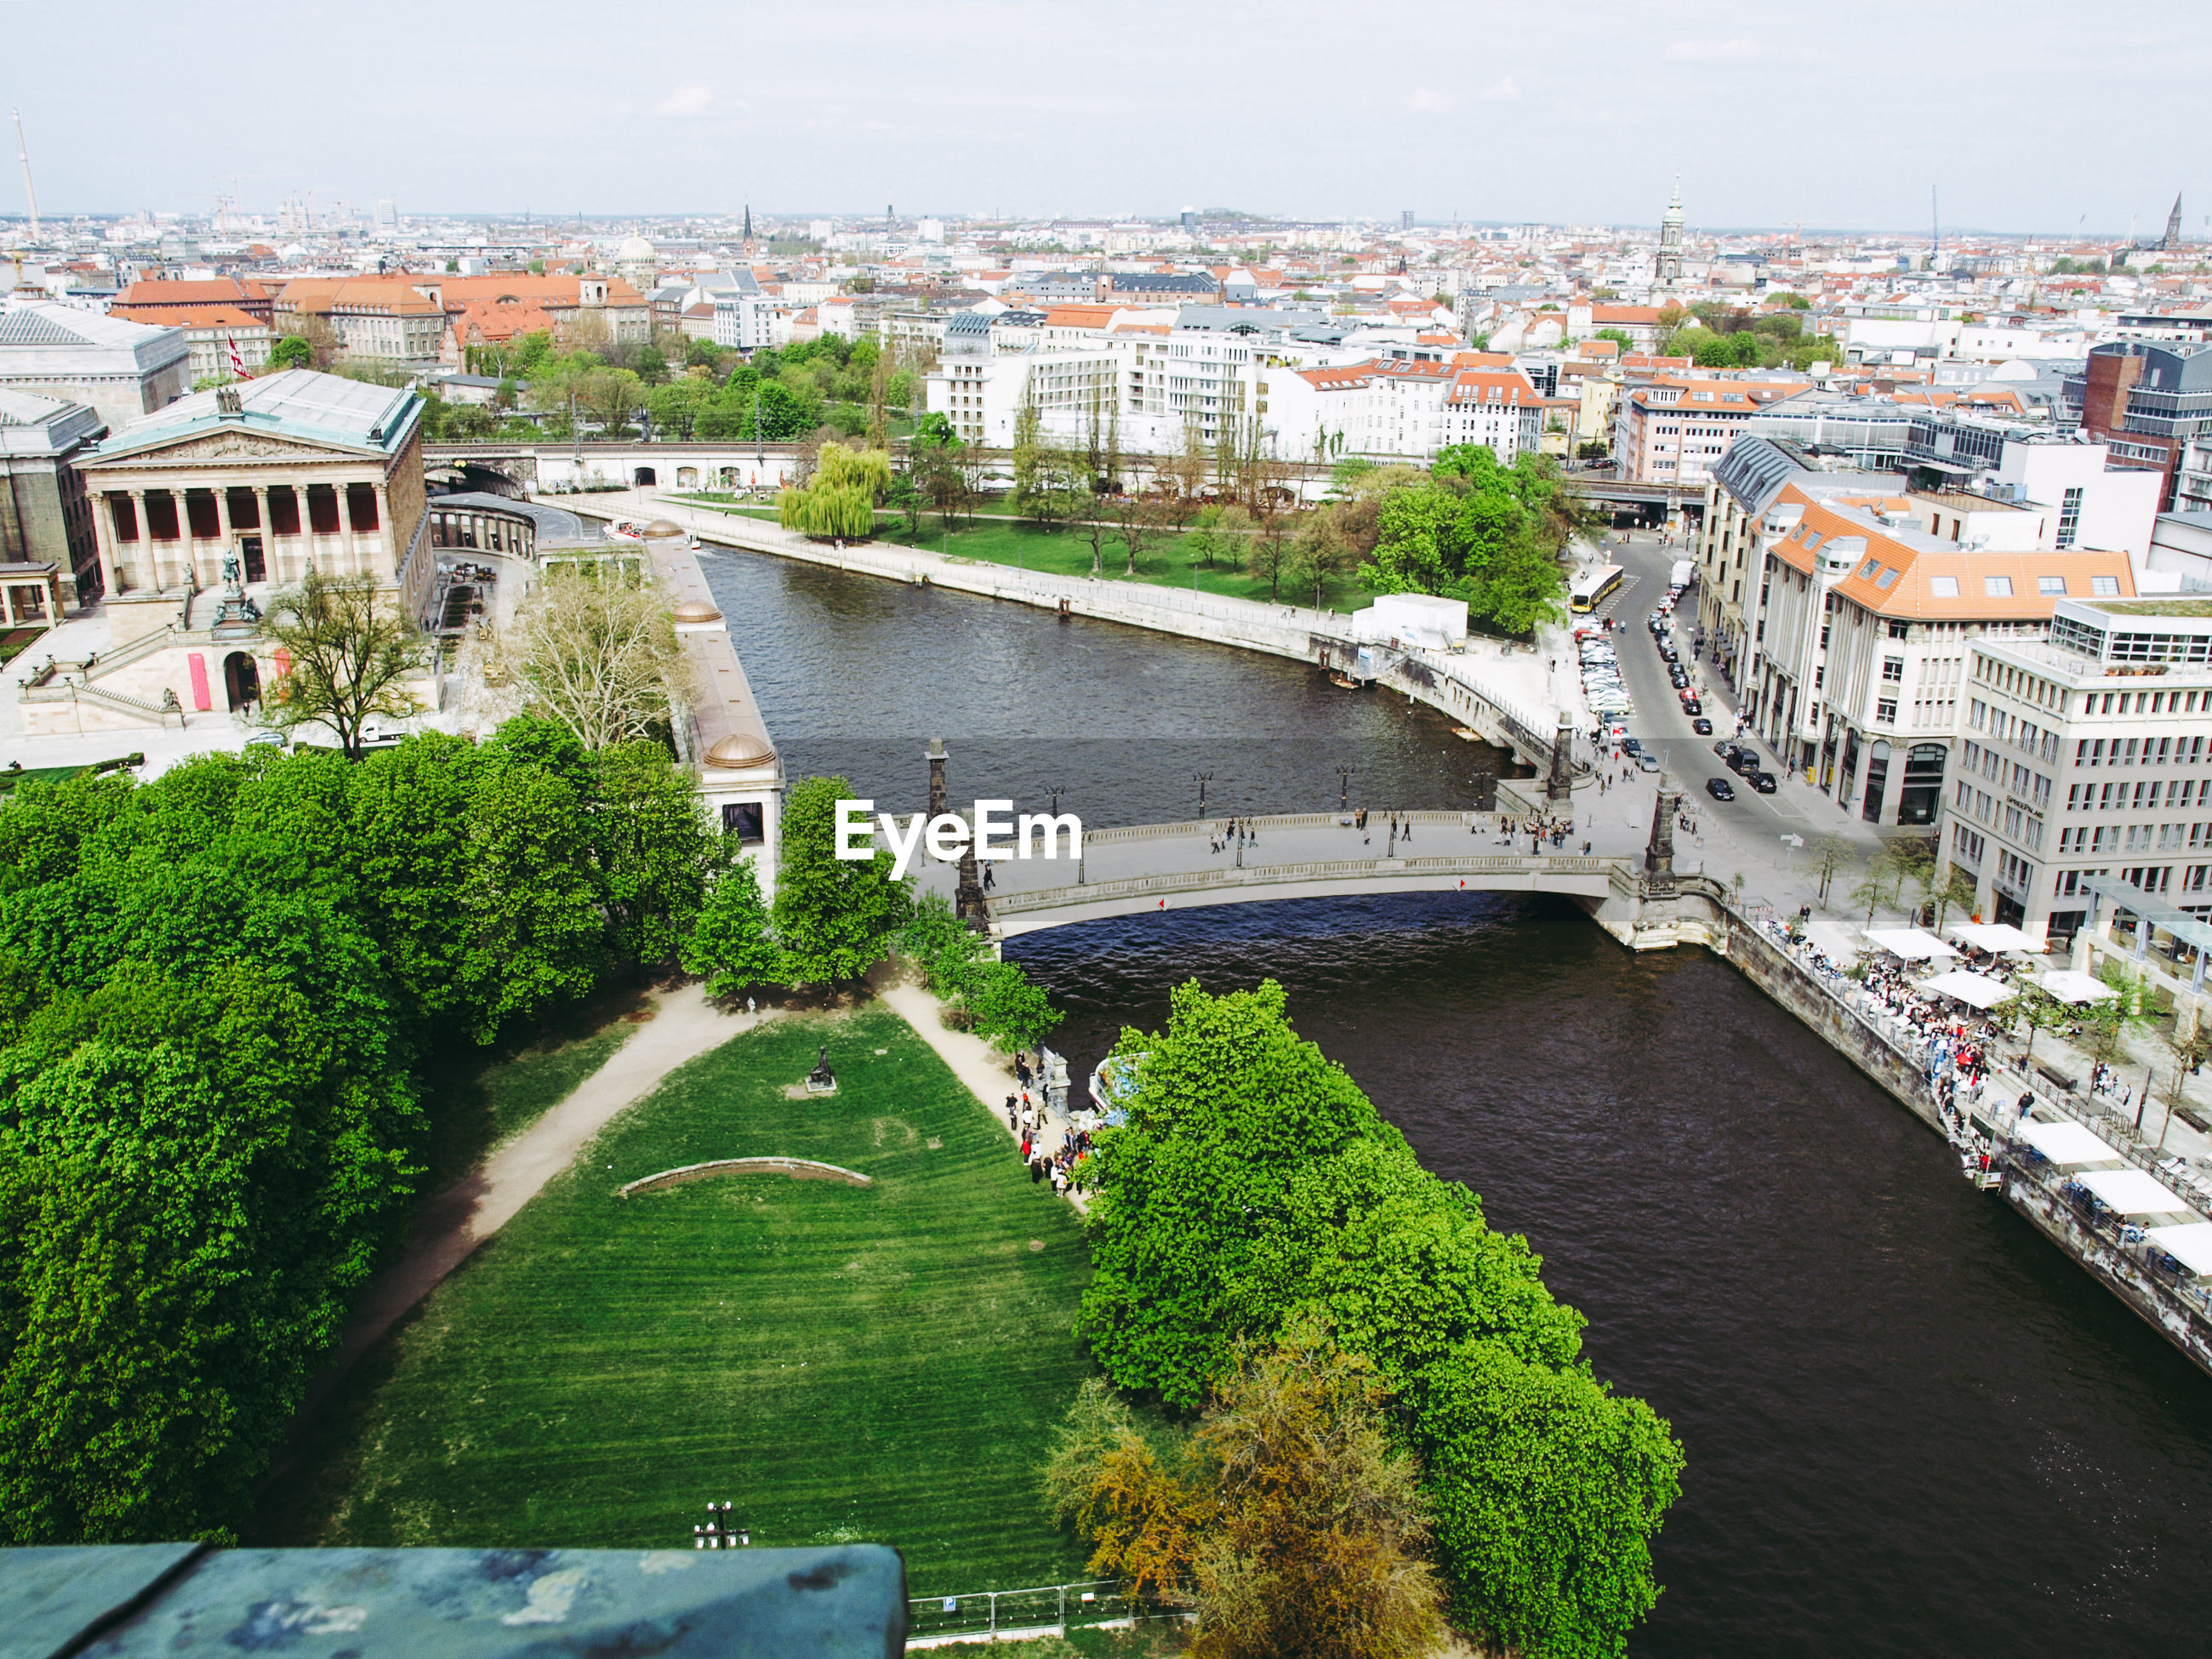 HIGH ANGLE VIEW OF ARCH BRIDGE OVER RIVER AND CITYSCAPE